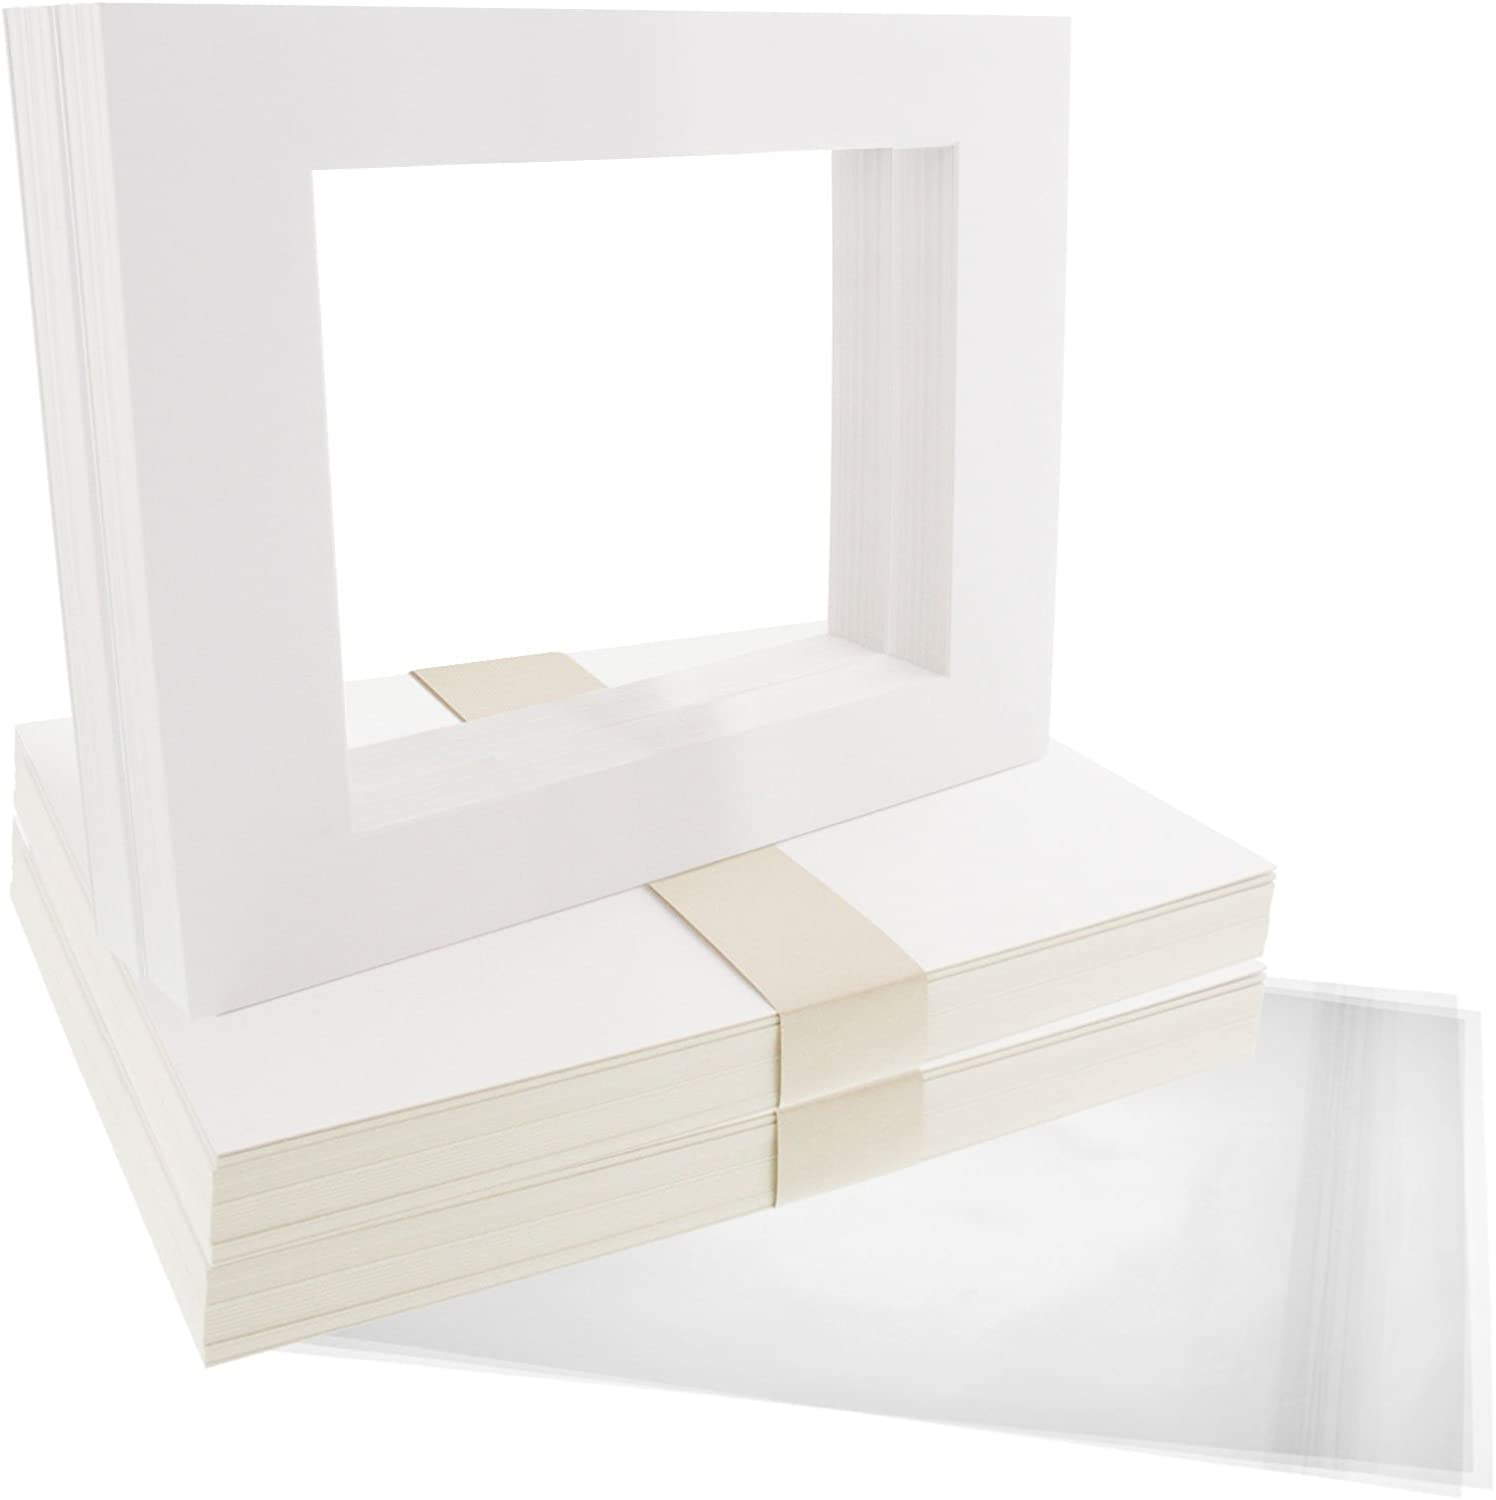 US Art Supply Art Mats Acid-Free Pre-Cut 11x14 White Picture Mat Matte Sets. Includes a Pack of 50 White Core Bevel Cut Mattes for 8x10 Photos, Pack of 50 Backers & 50 Clear Sleeve Bags